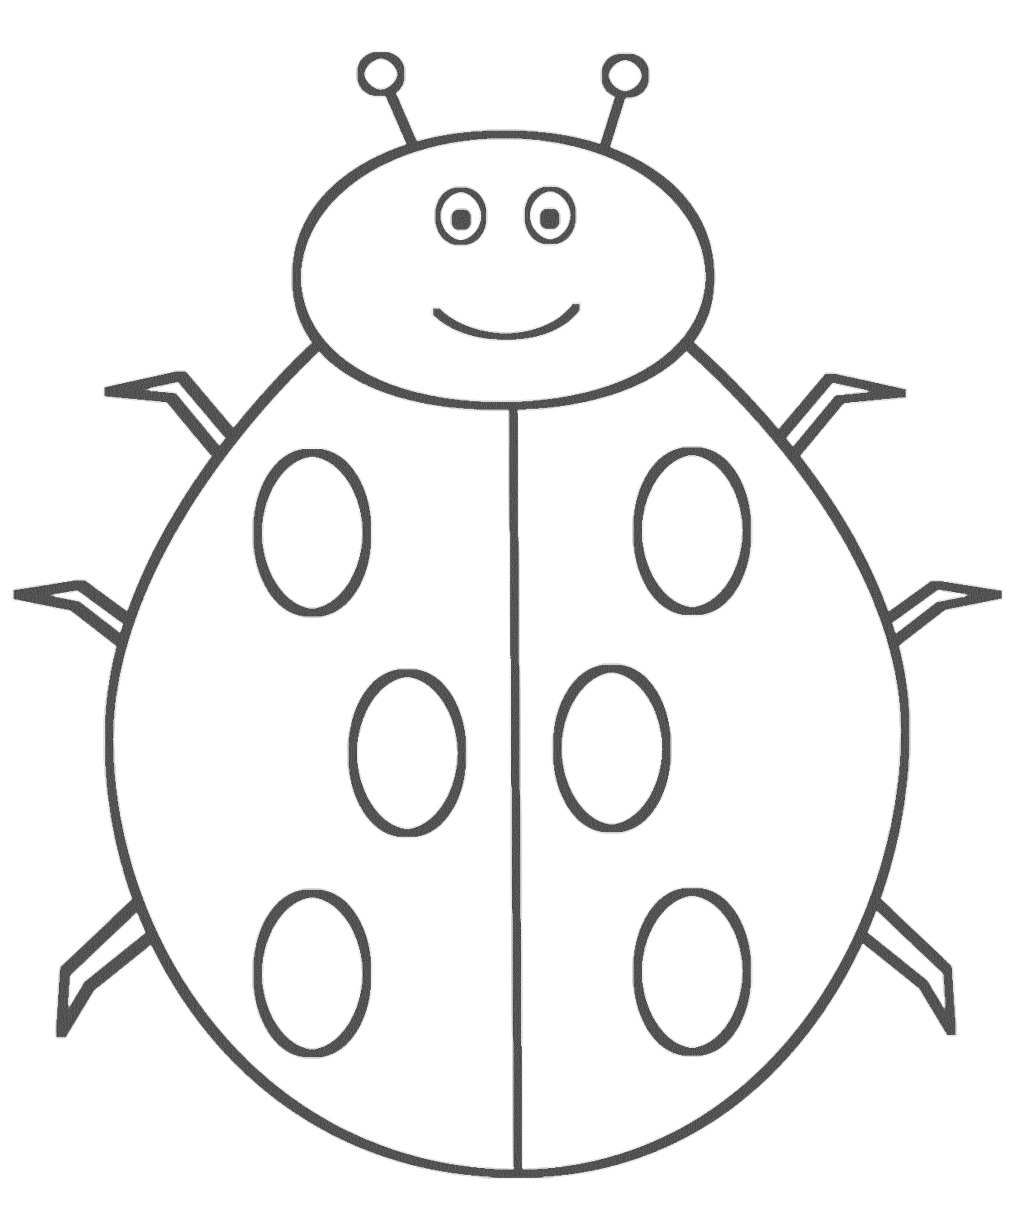 Divine image pertaining to ladybug printable coloring pages